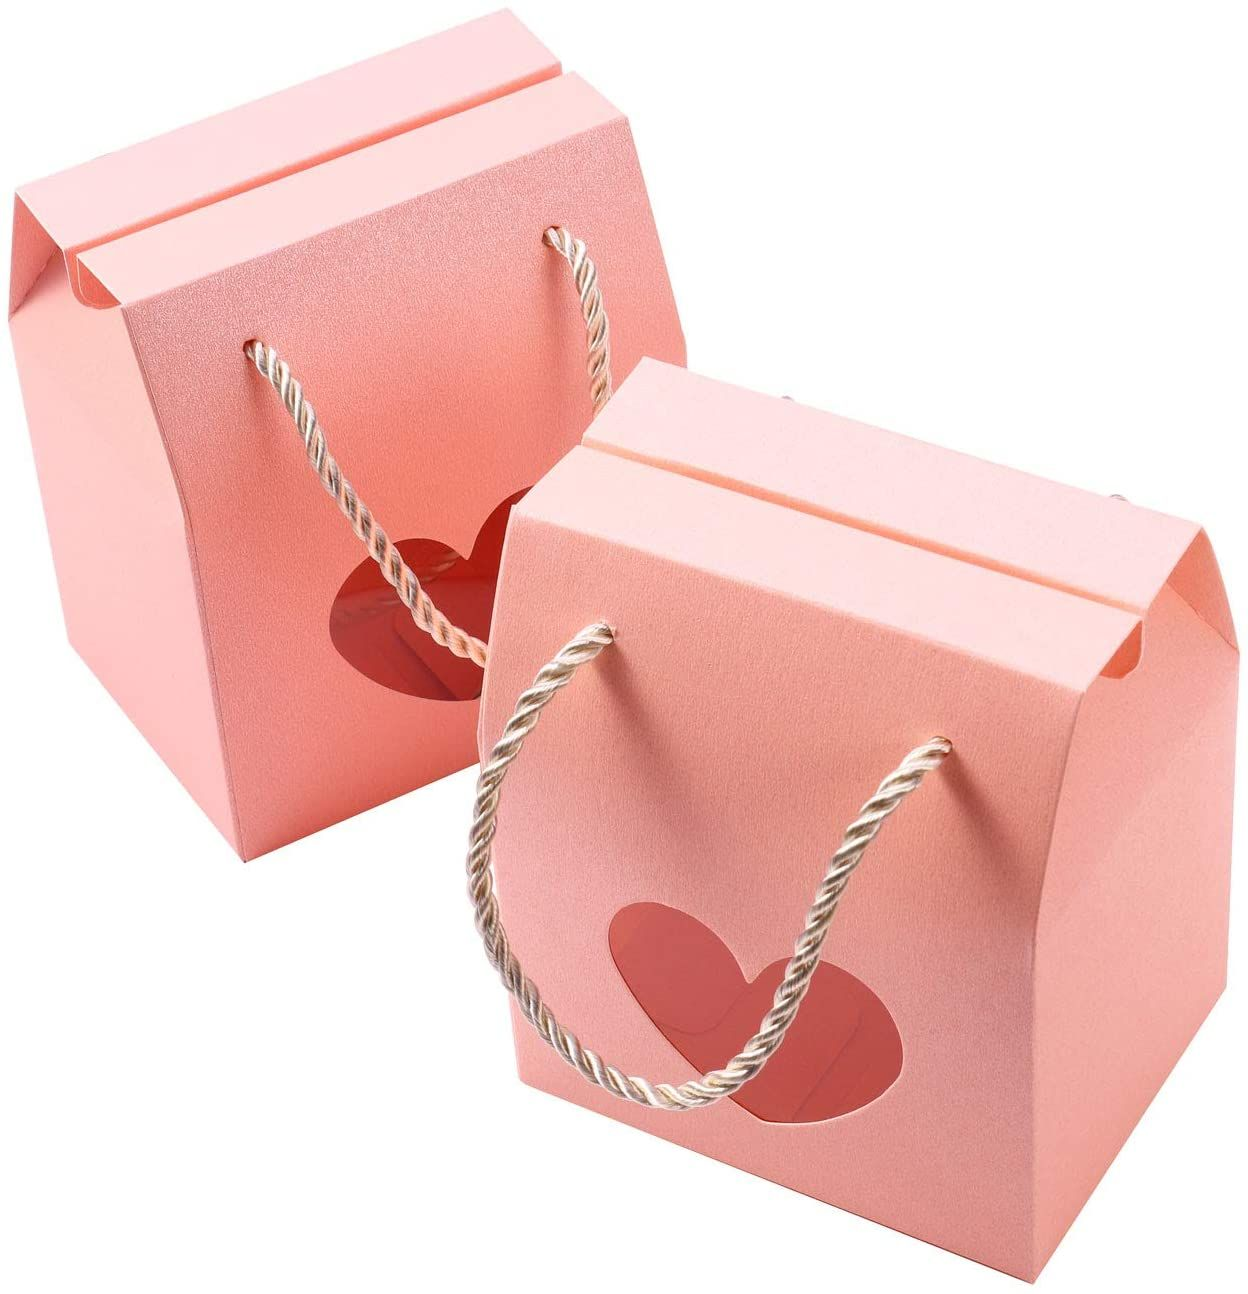 Pink Portable Folding Heart Window Kraft Paper Wrap Candy Gift Boxes With Rope Handle for Wedding Partry Favor Birthday